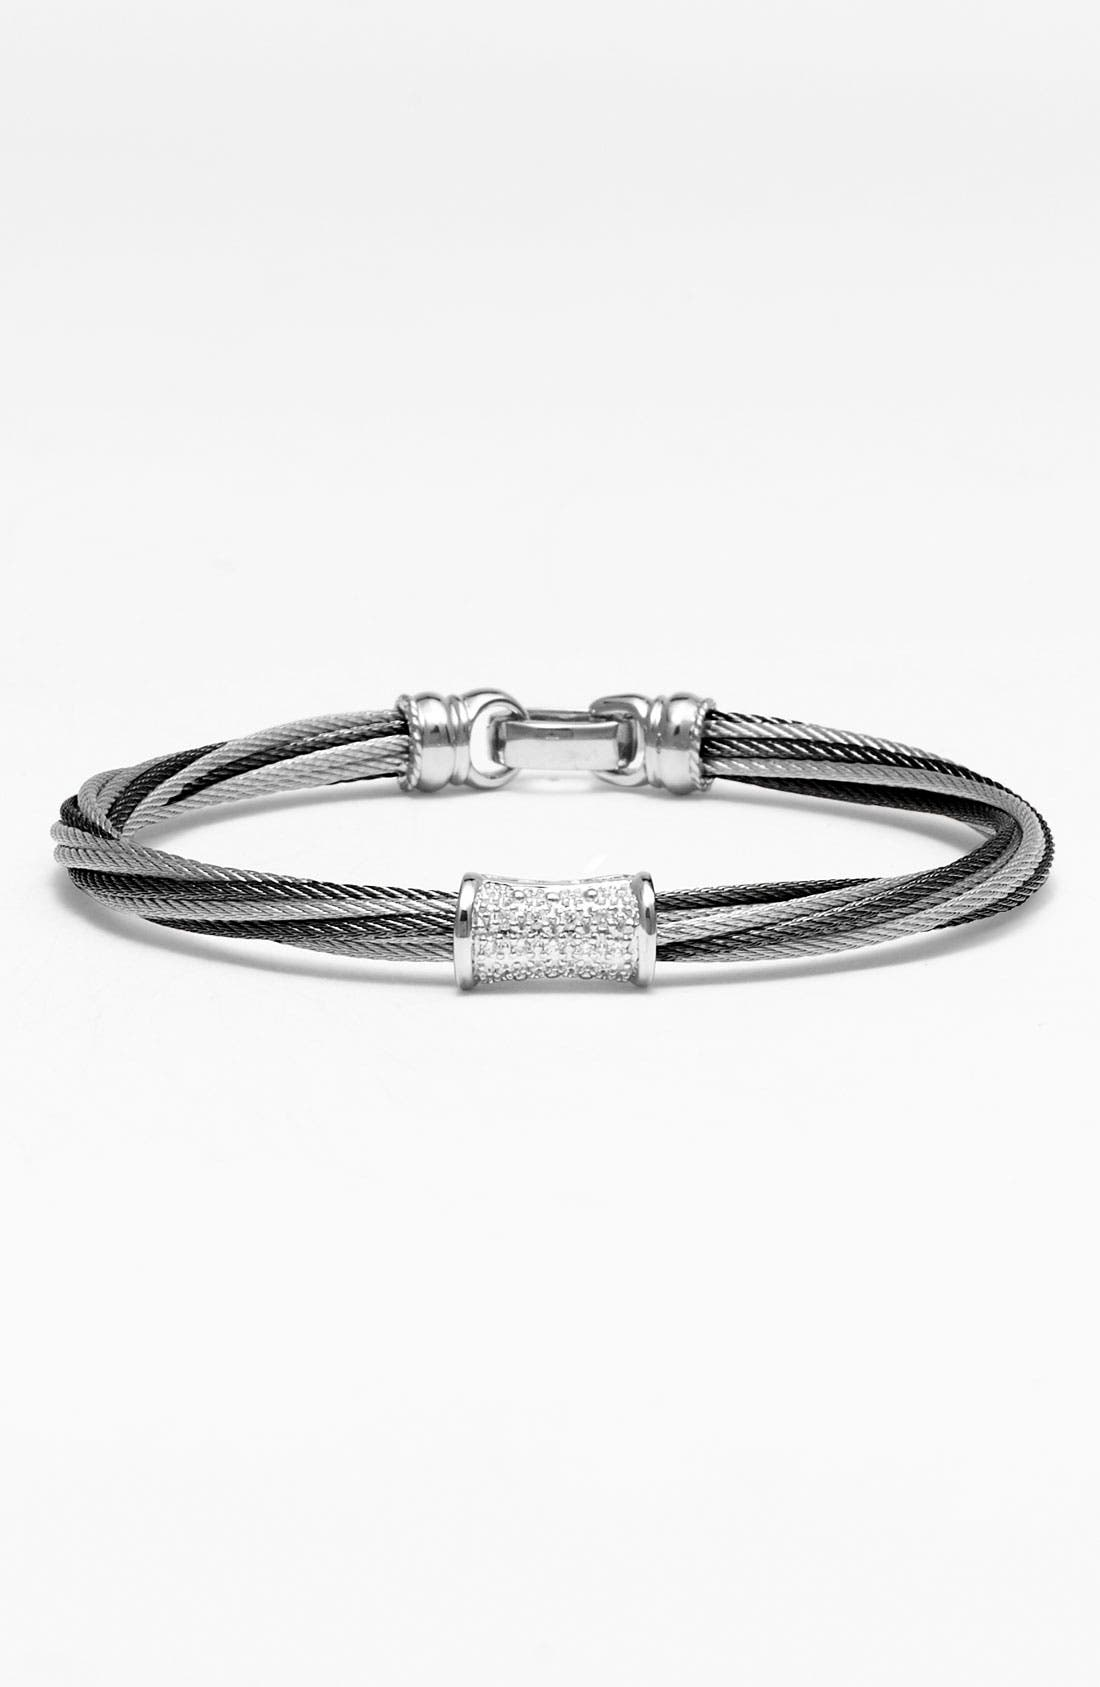 Alternate Image 1 Selected - ALOR® 'Mixed Modern' Diamond Station Cable Bracelet